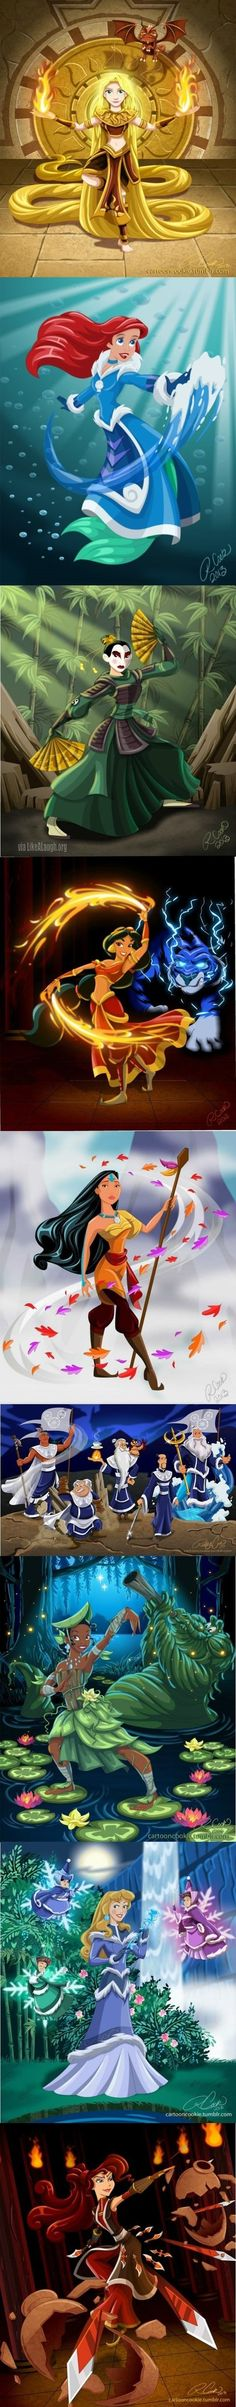 Disney Benders ~my favortie being Jasmine. Just because Rajah looks amazing!